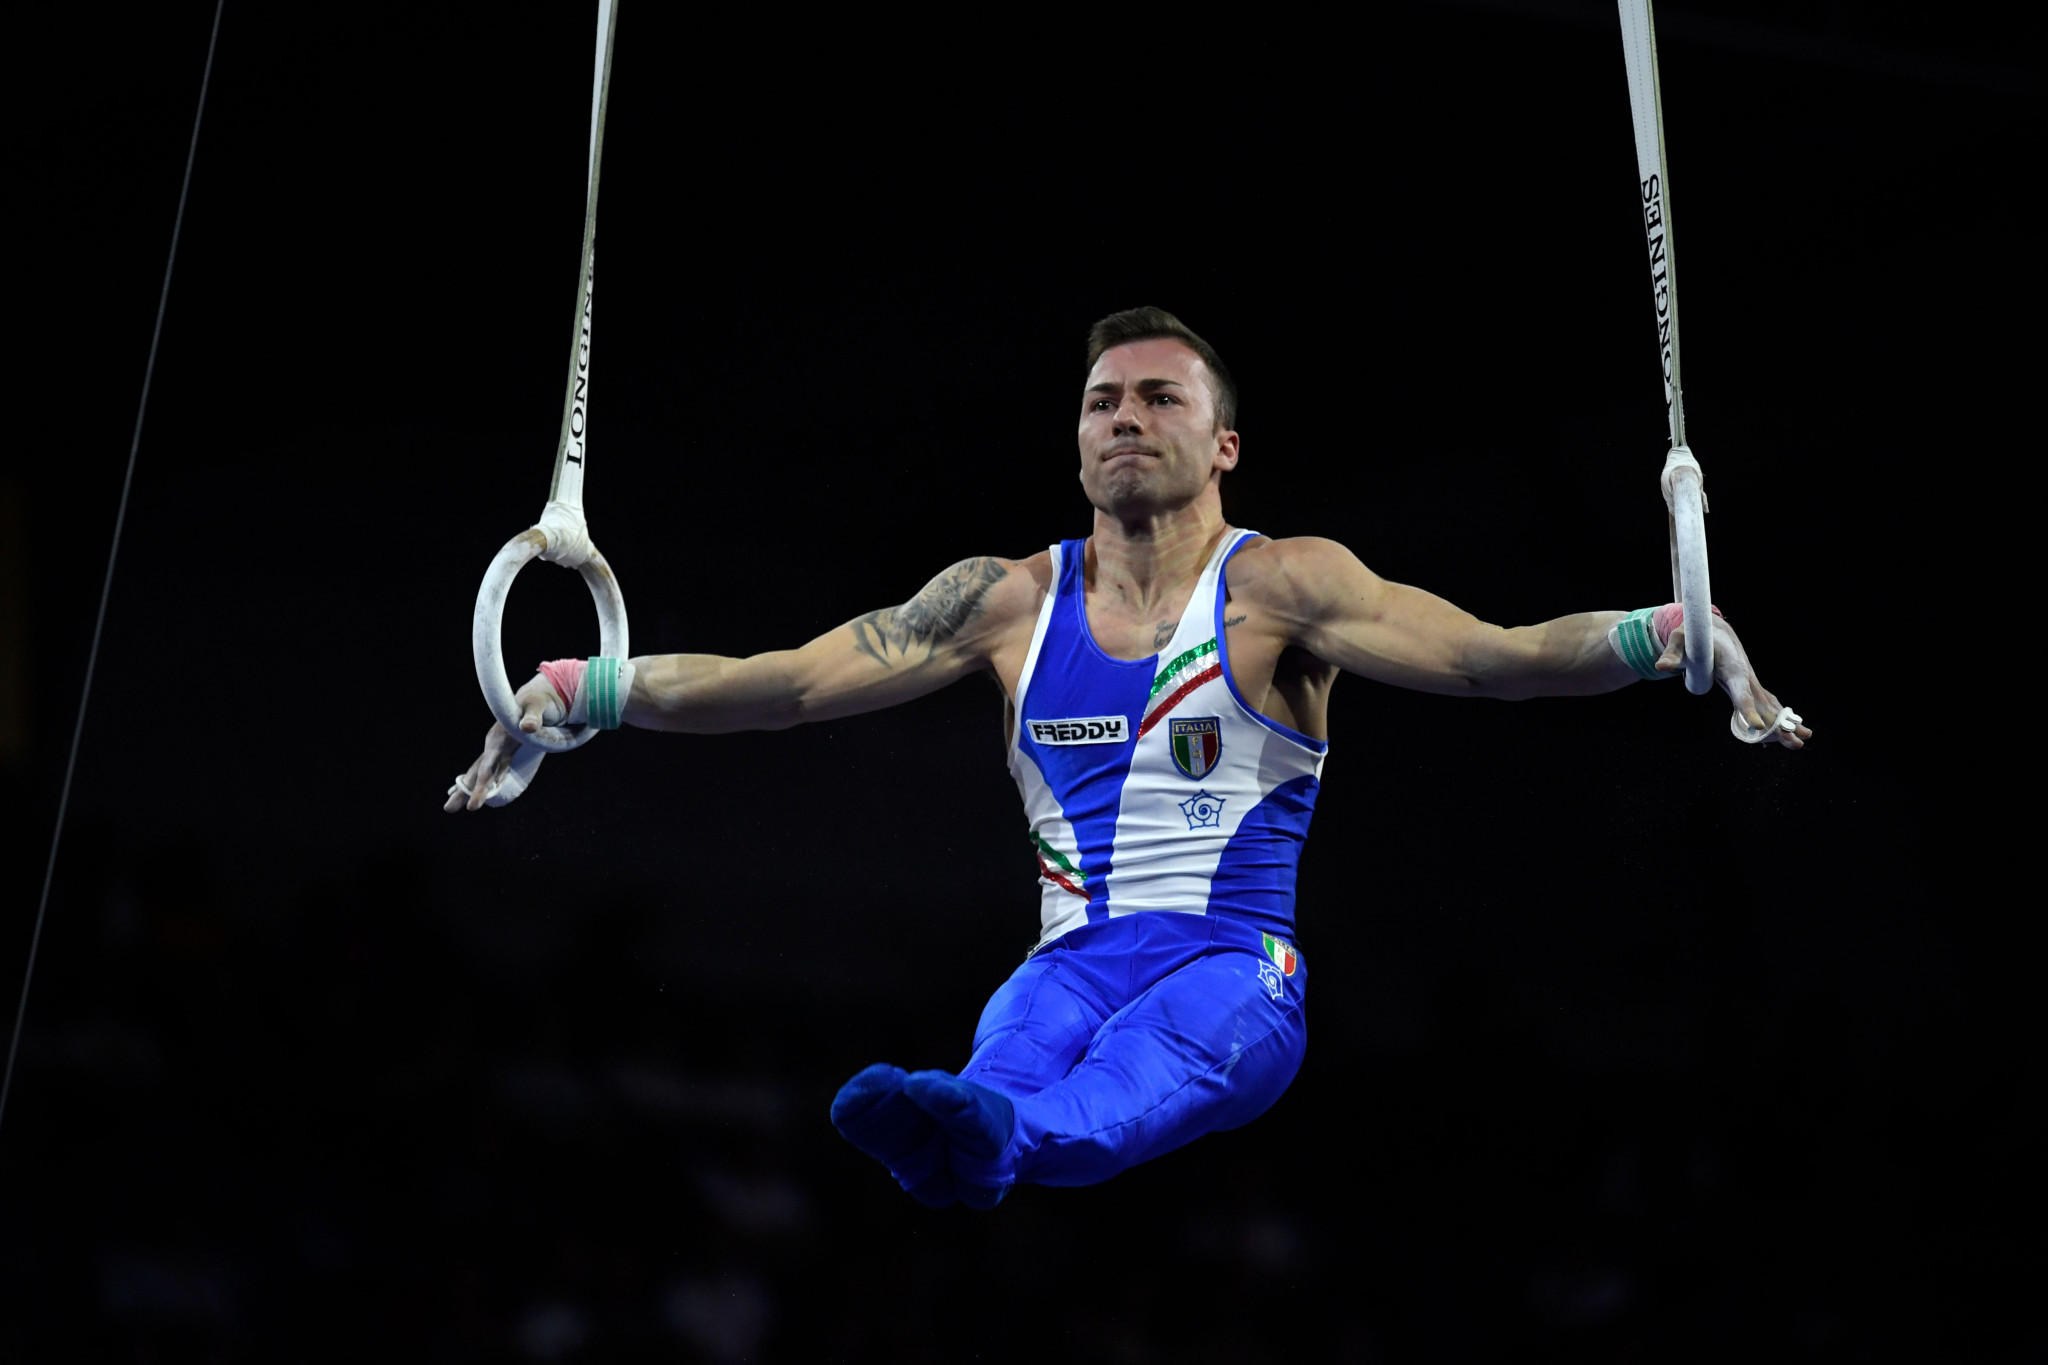 Italy joins list of withdrawals from European Artistic and Rhythmic Gymnastics Championships